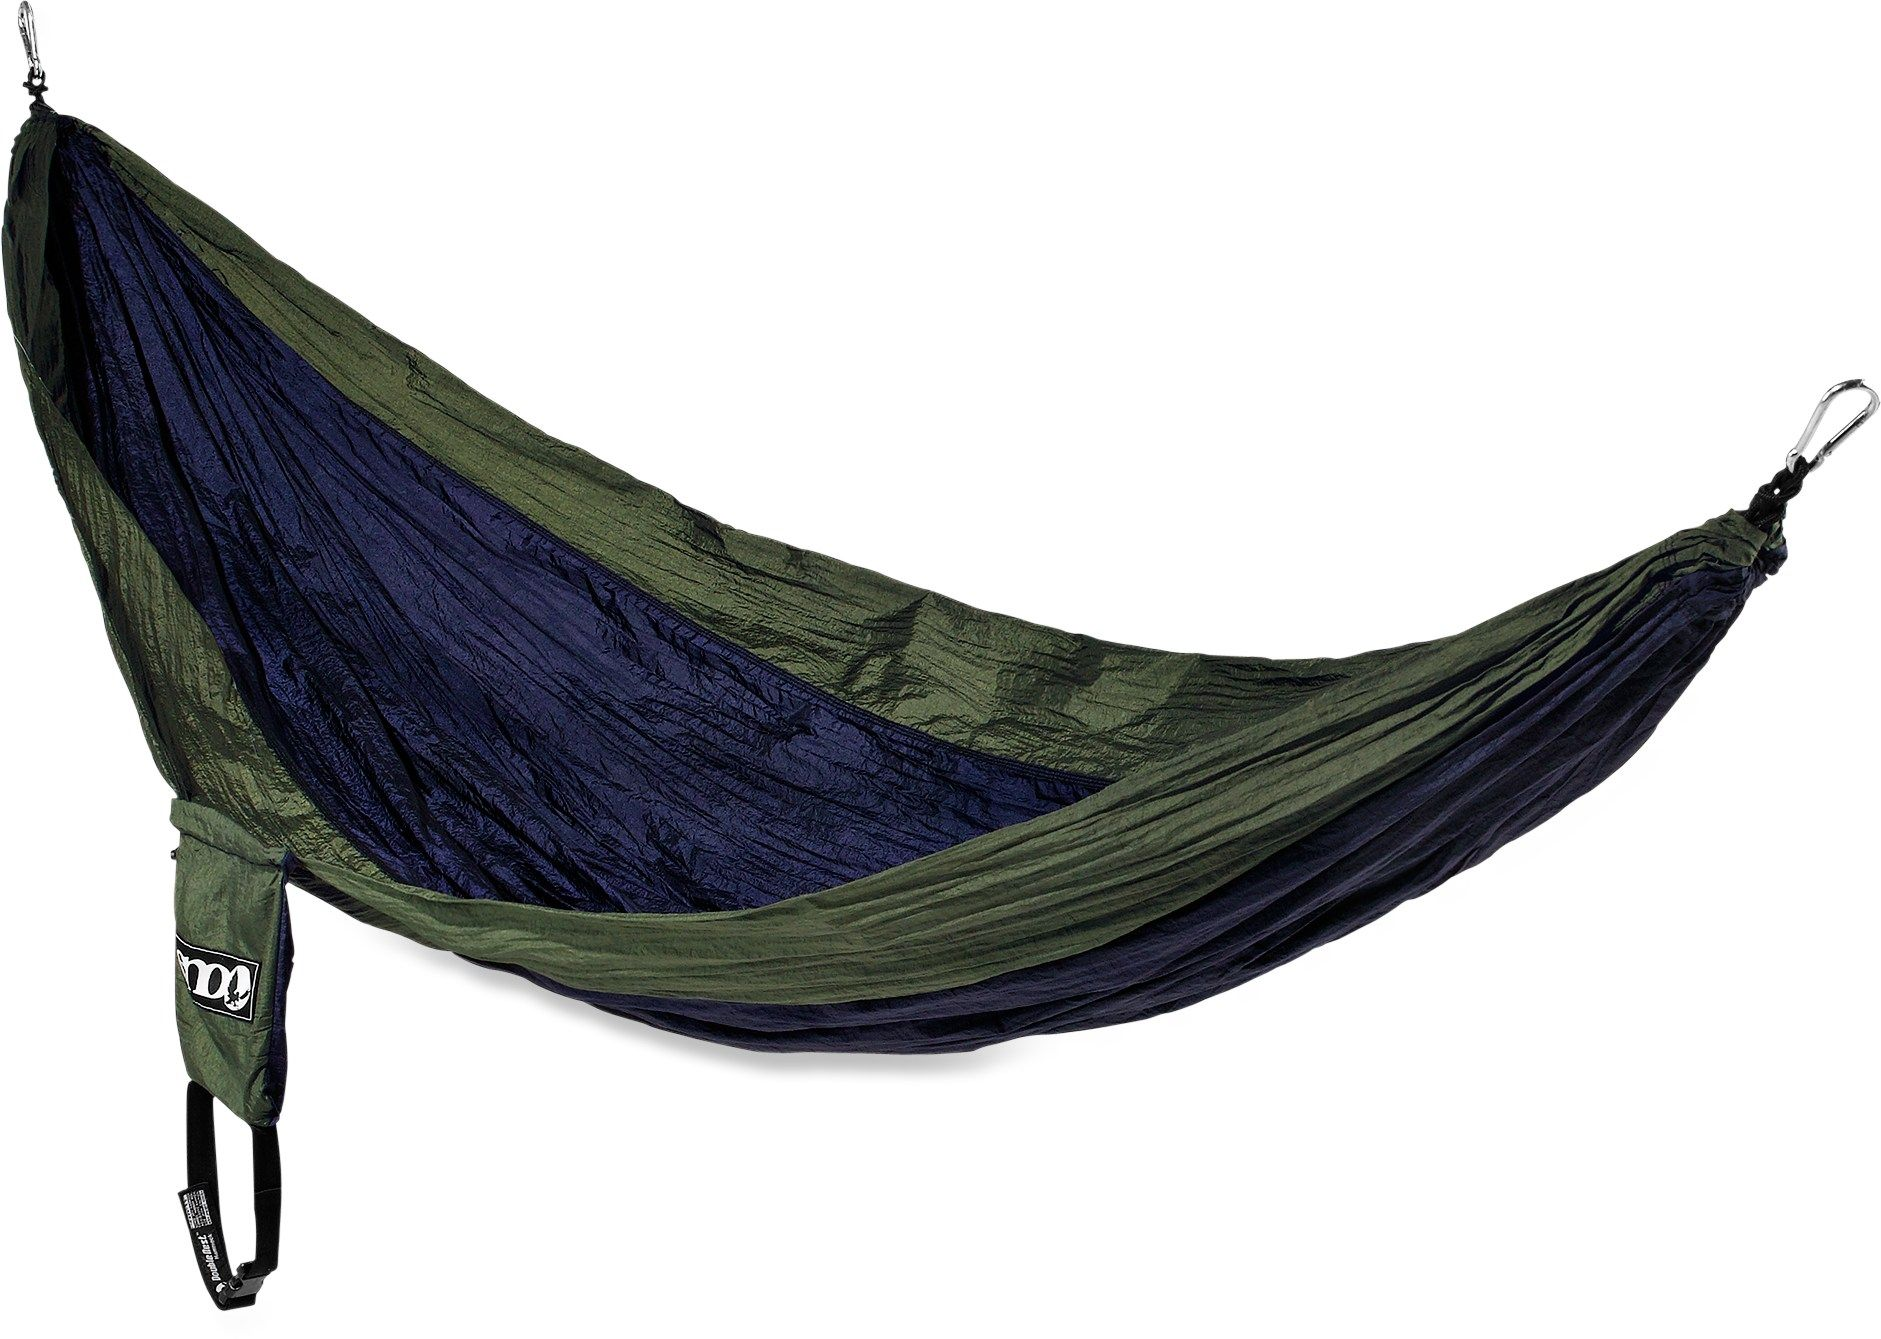 eagles nest eno deluxe review hammock doublenest best purple teal outfitters